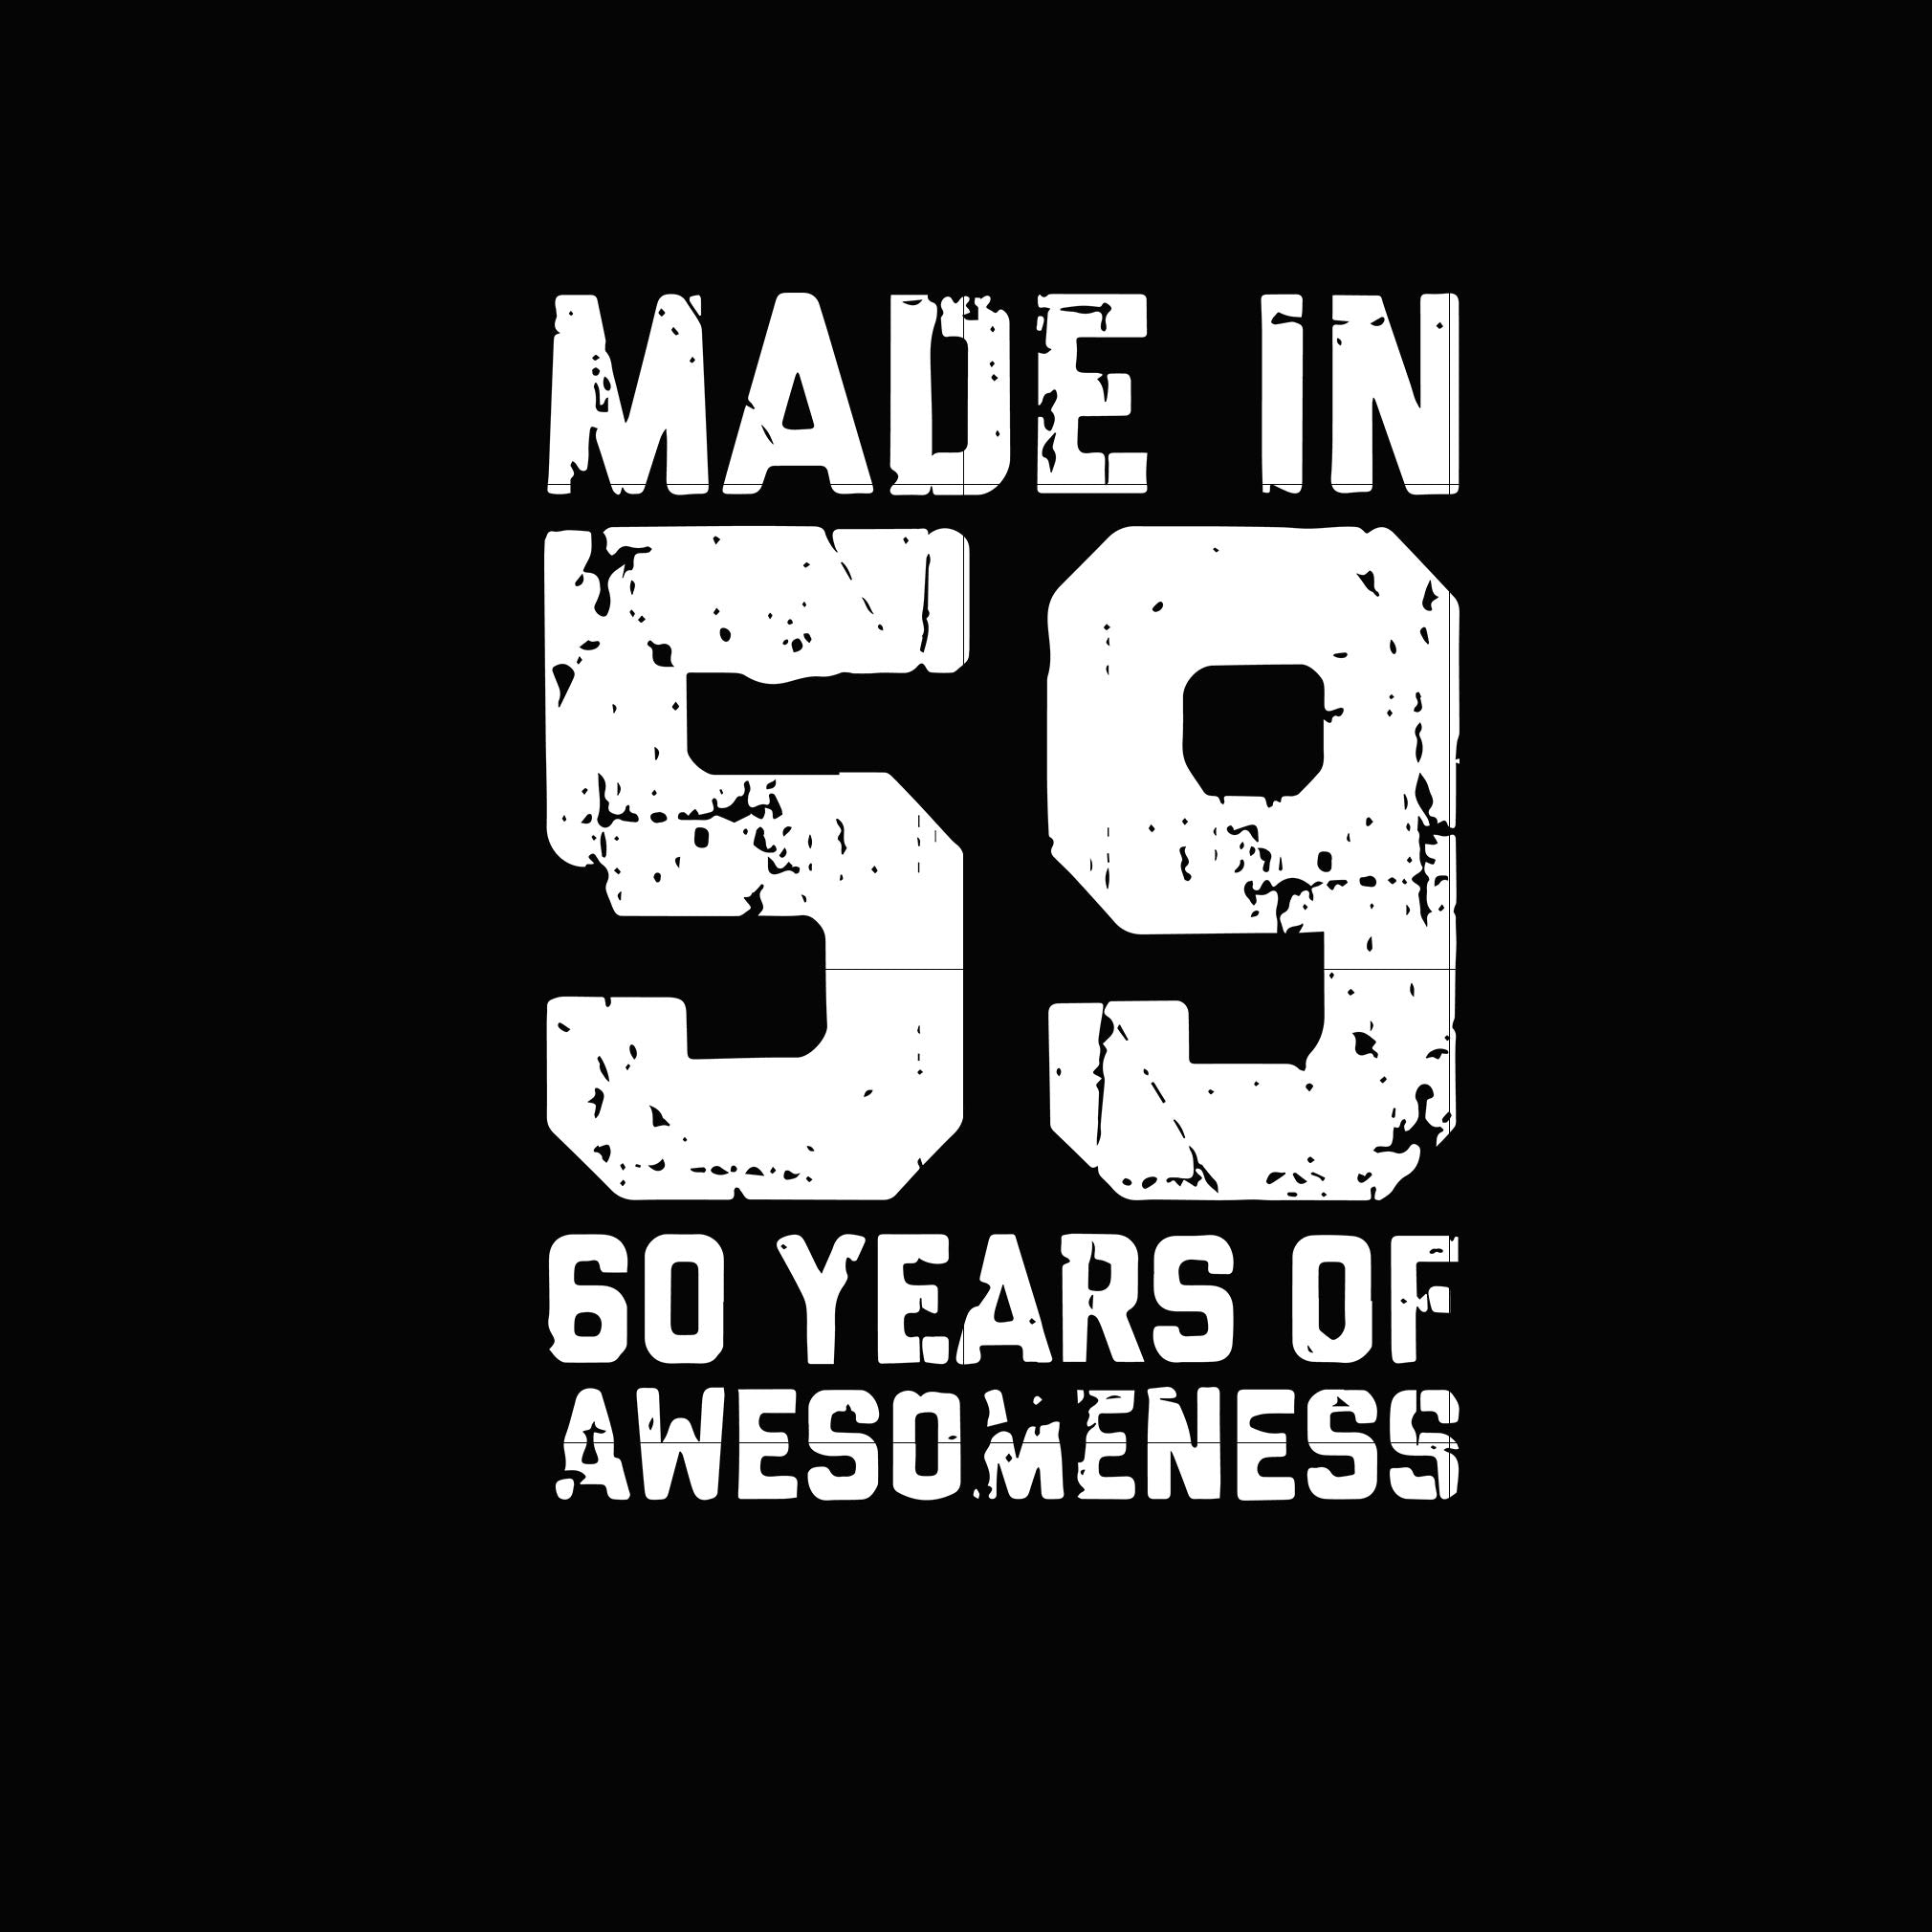 Made in 59 60 years of awesomeness svg,dxf,eps,png digital file